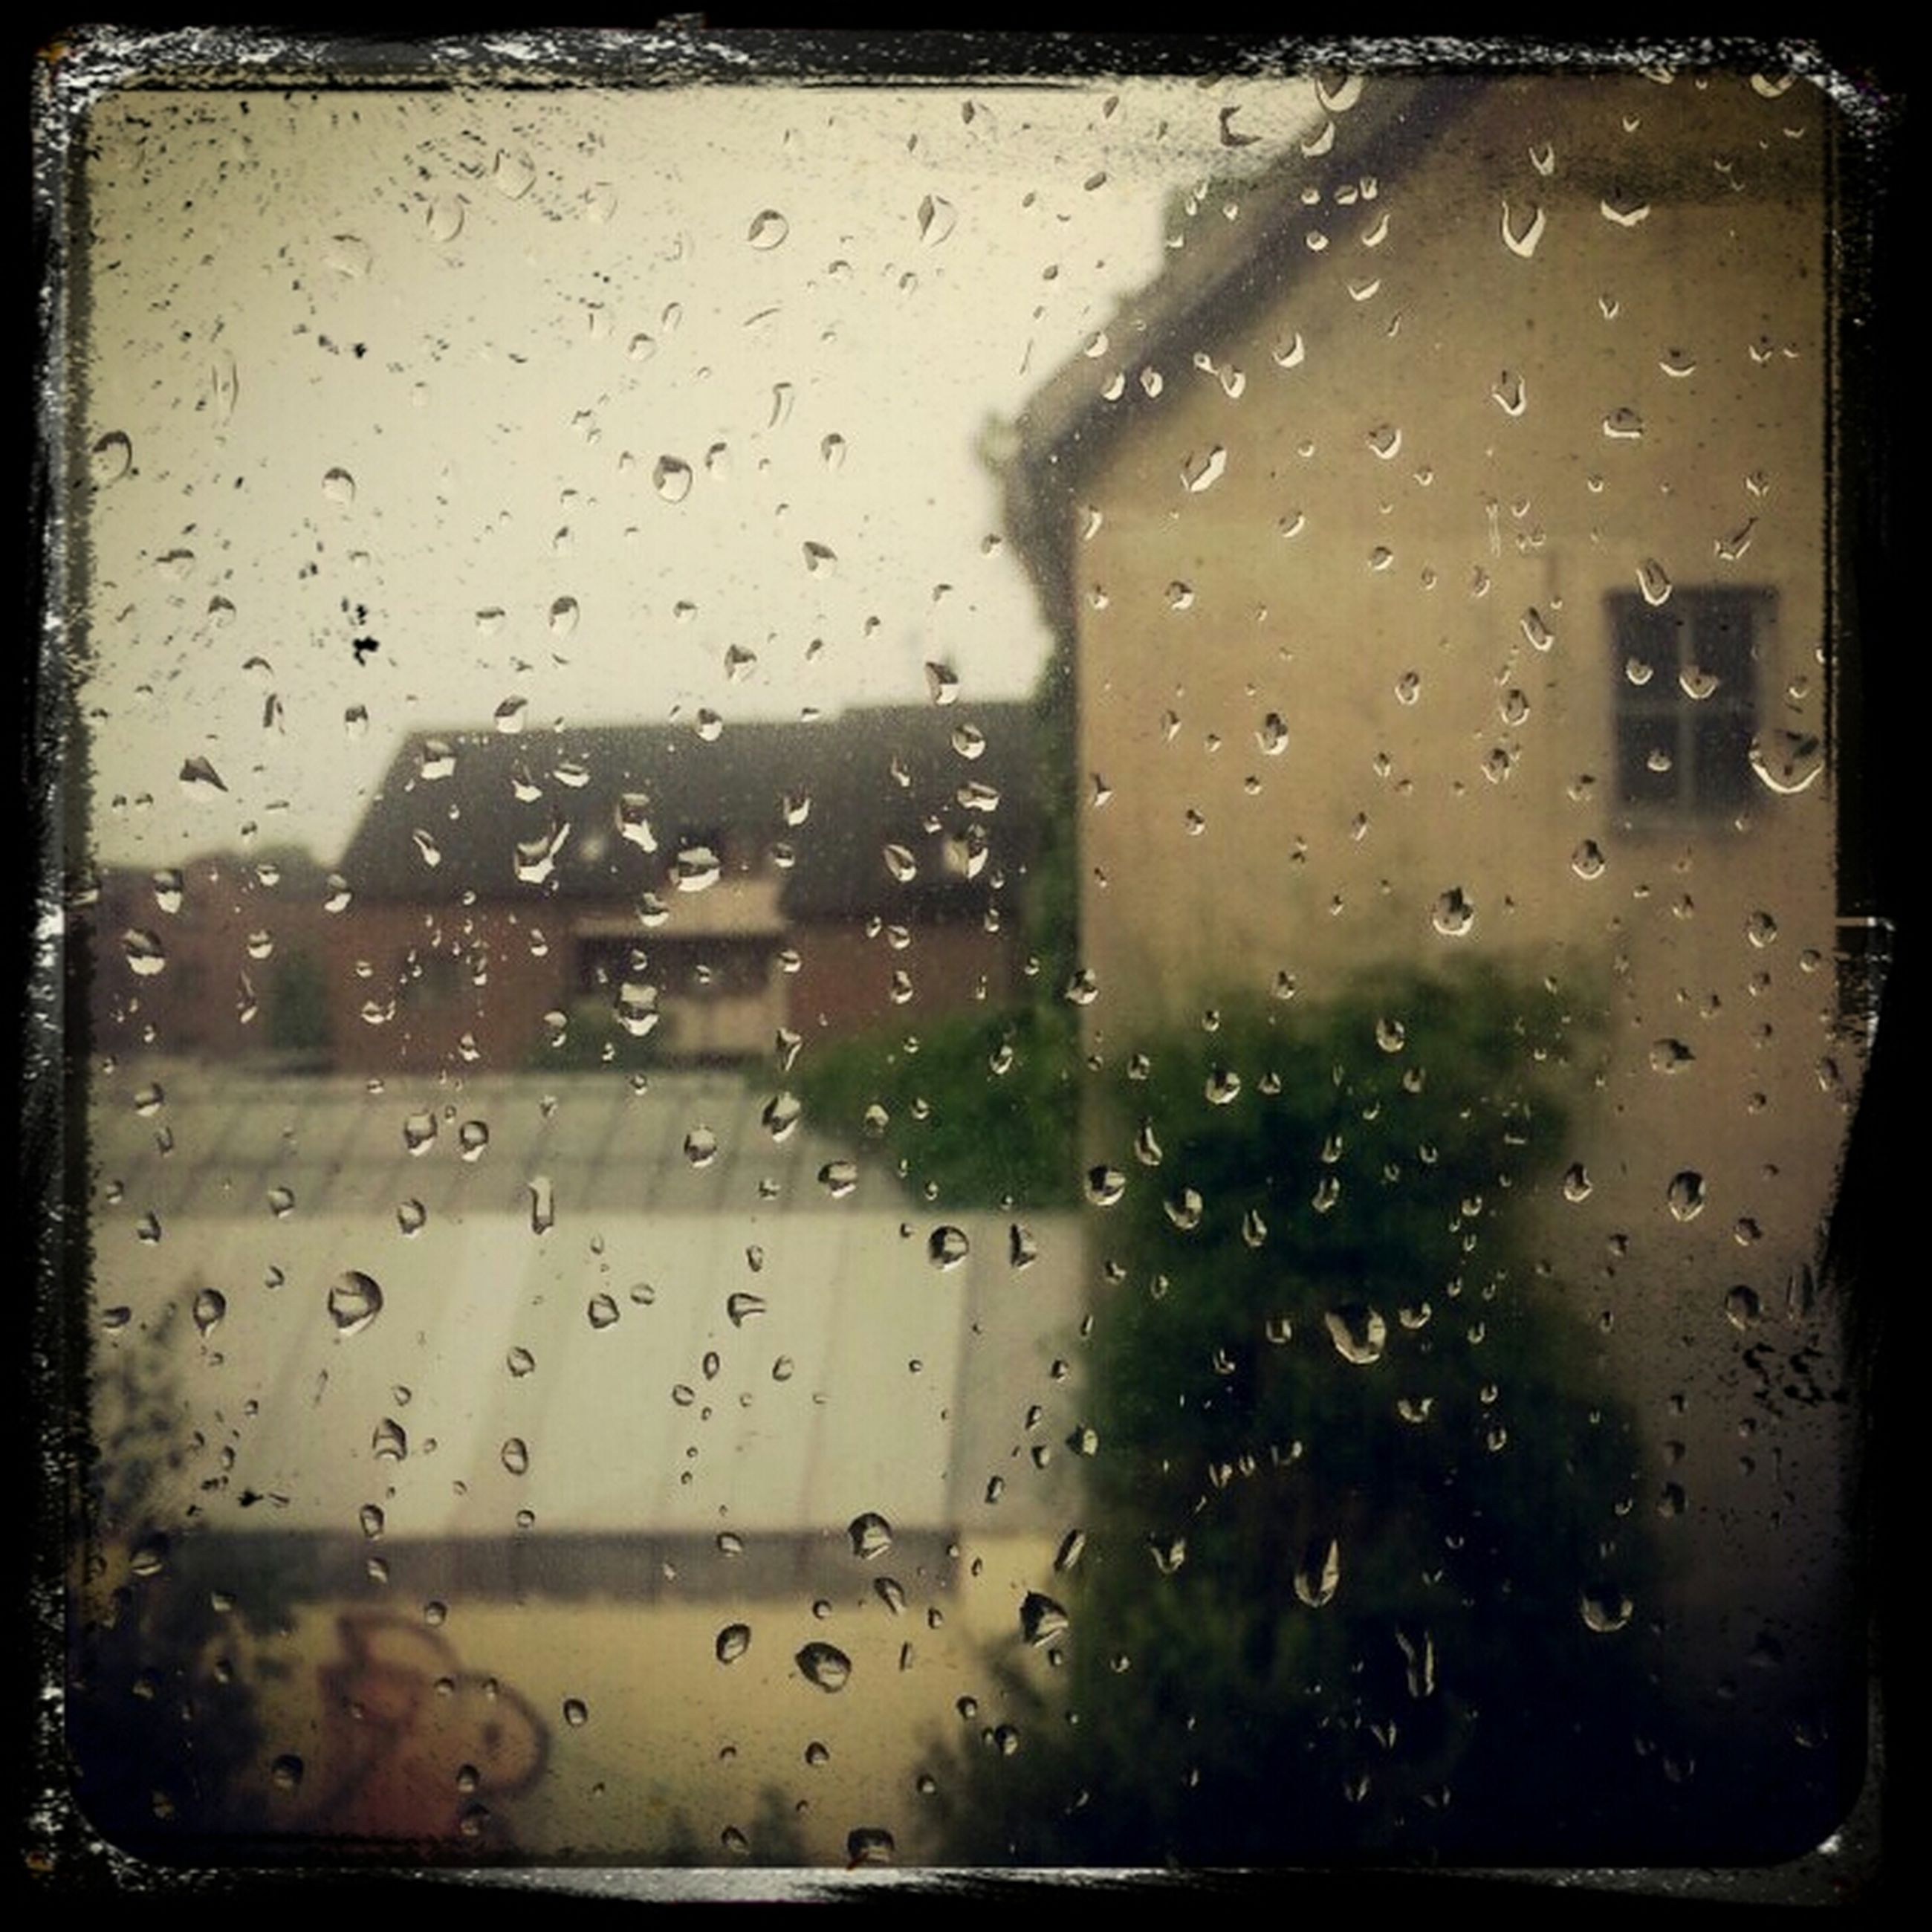 window, drop, wet, rain, transparent, indoors, glass - material, weather, raindrop, building exterior, built structure, architecture, season, water, car, transportation, land vehicle, glass, vehicle interior, focus on foreground